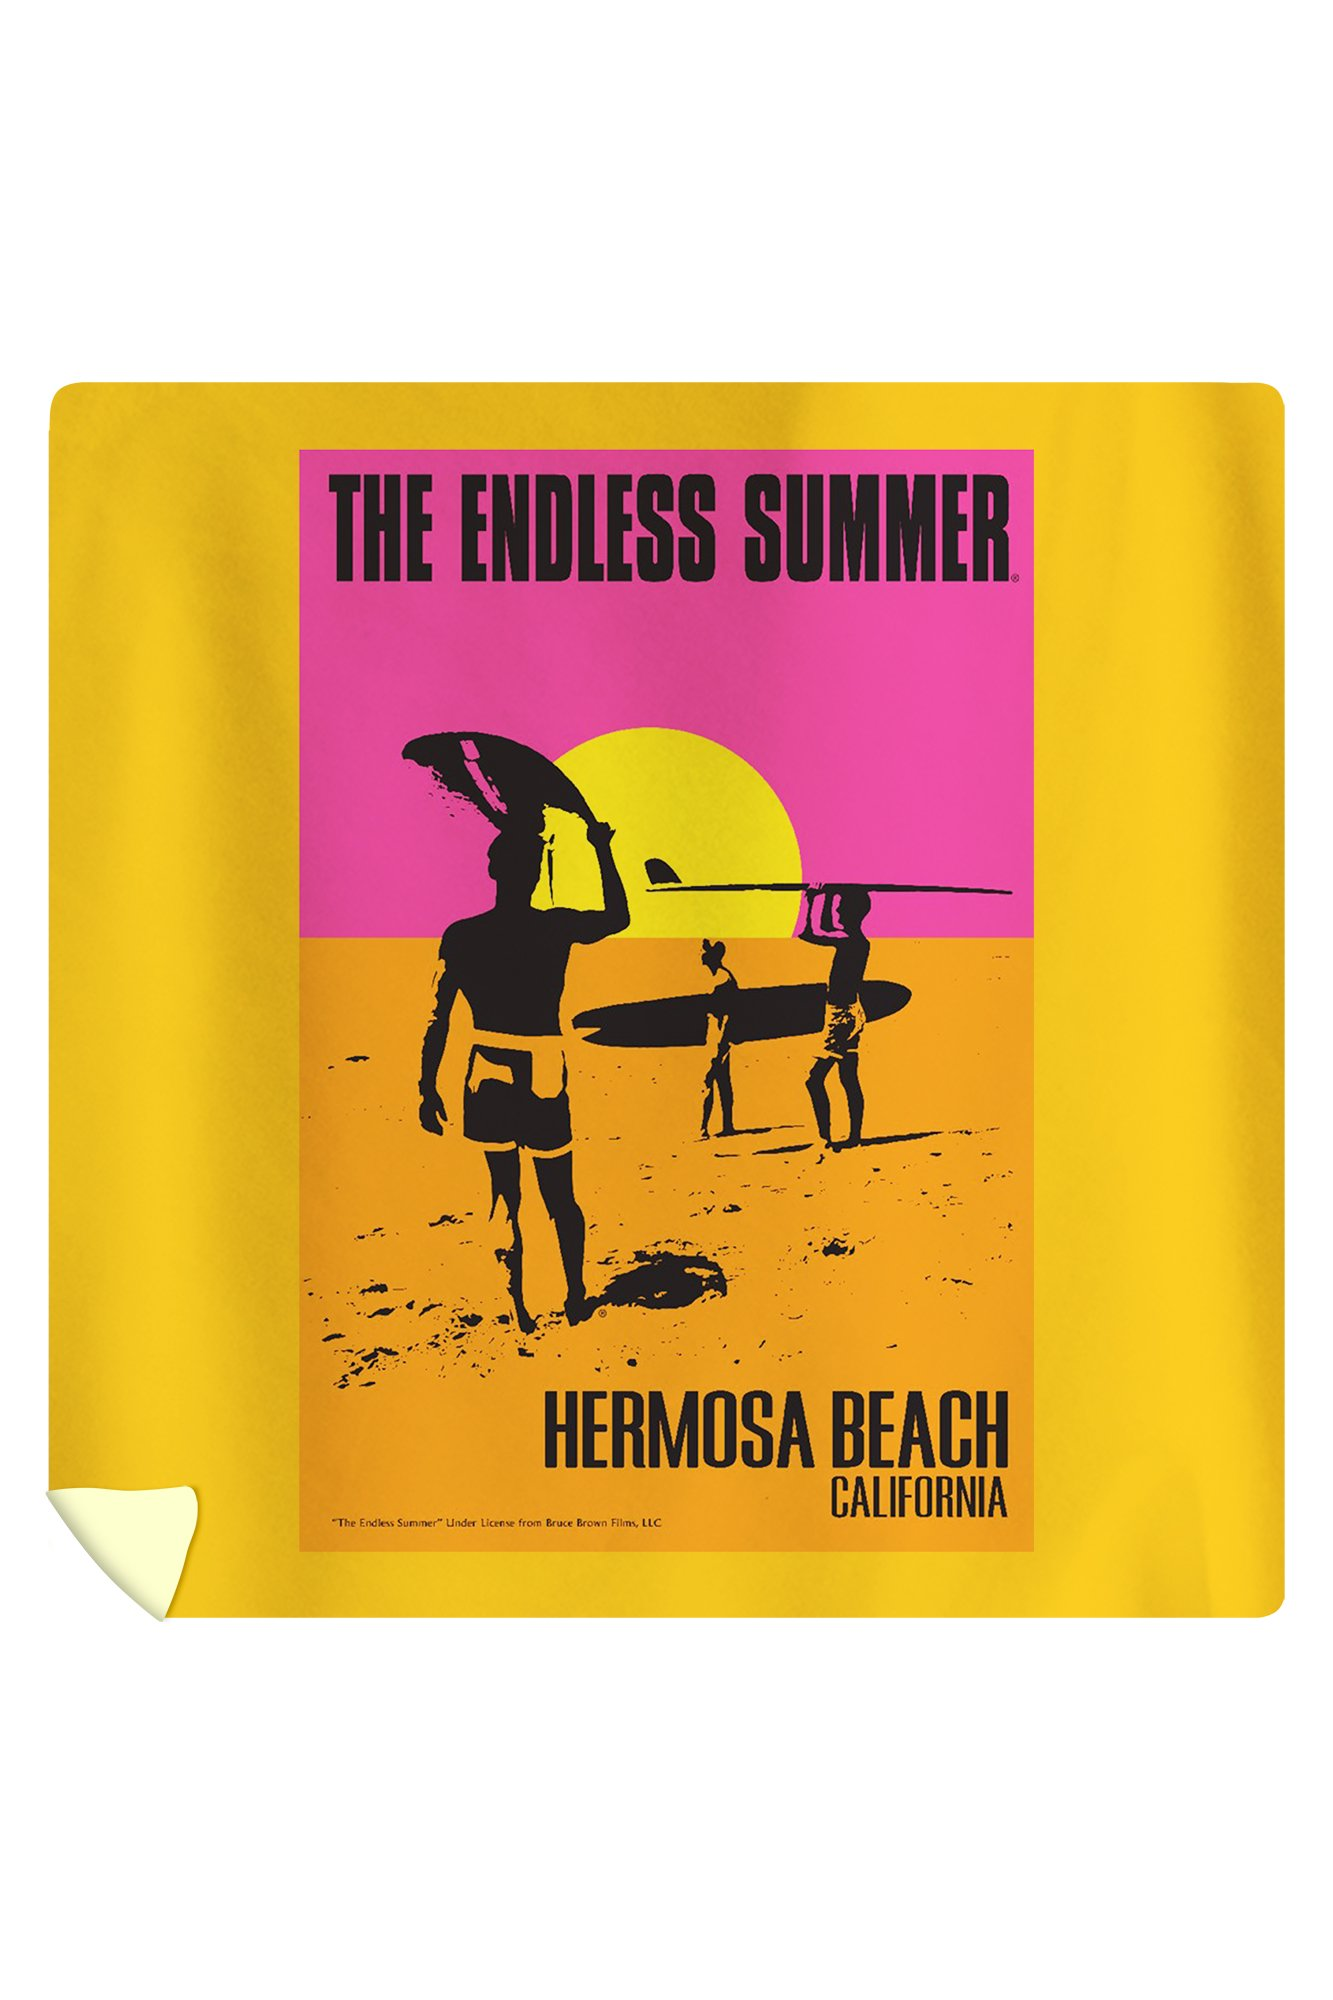 Hermosa Beach, California - The Endless Summer - Original Movie Poster (88x88 Queen Microfiber Duvet Cover)